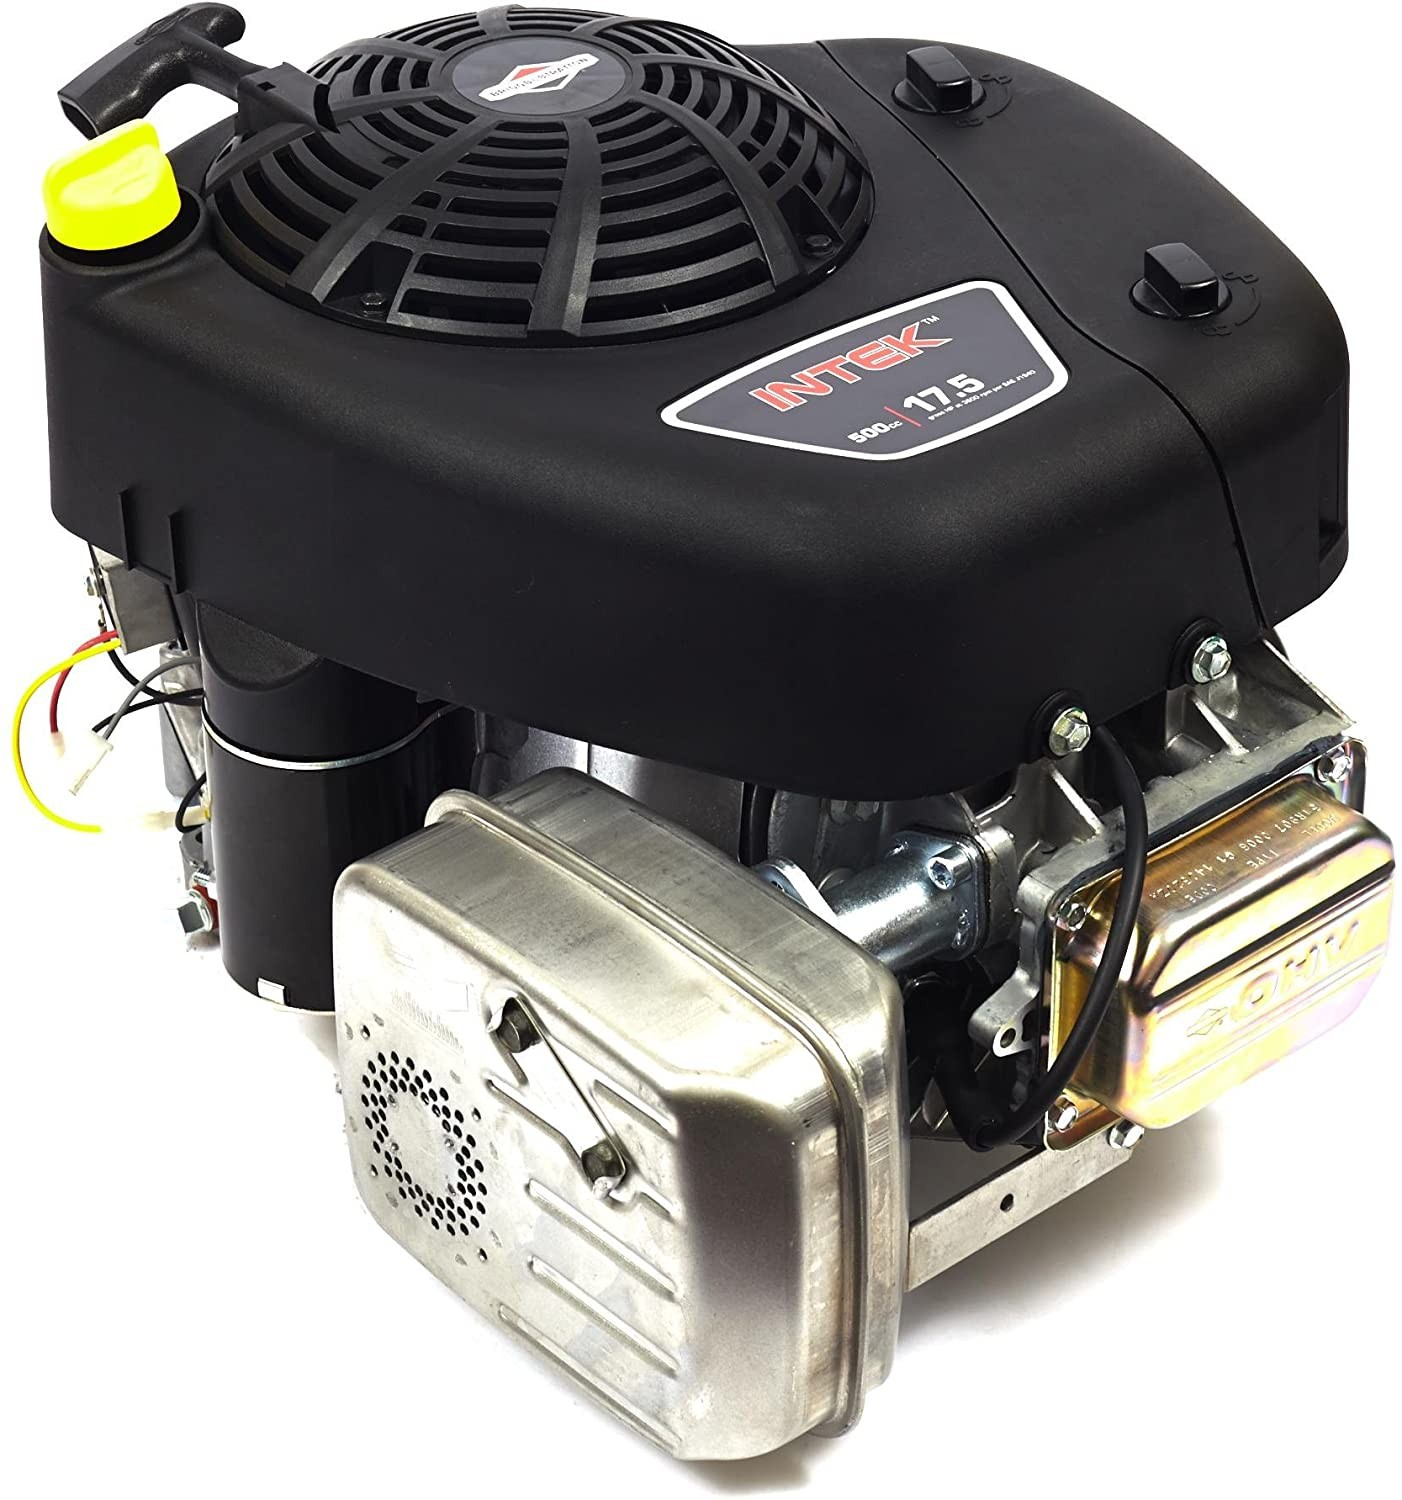 17.5 Hp Briggs and Stratton End Play Briggs & Stratton 31r907 0006 G1 500cc 17 5 Gross Hp Engine with 1 Inch by 3 5 32 Inch Length Crankshaft Tapped 7 16 20 Inch Of 17.5 Hp Briggs and Stratton End Play